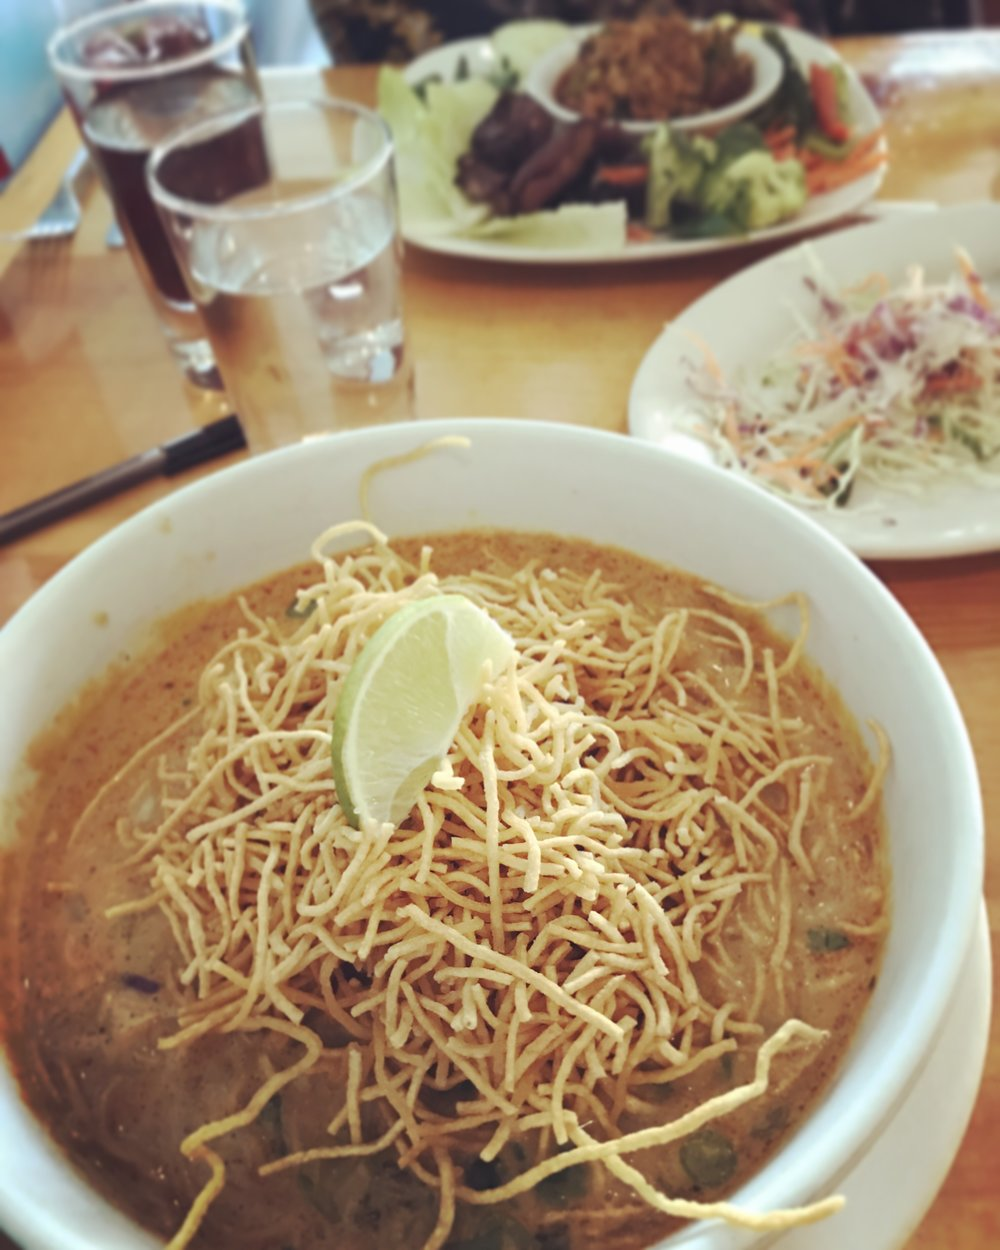 Khao Soi: Curried Chiang Mai egg noodle dish with beef, cilantro, pickled mustard greens and shallots.